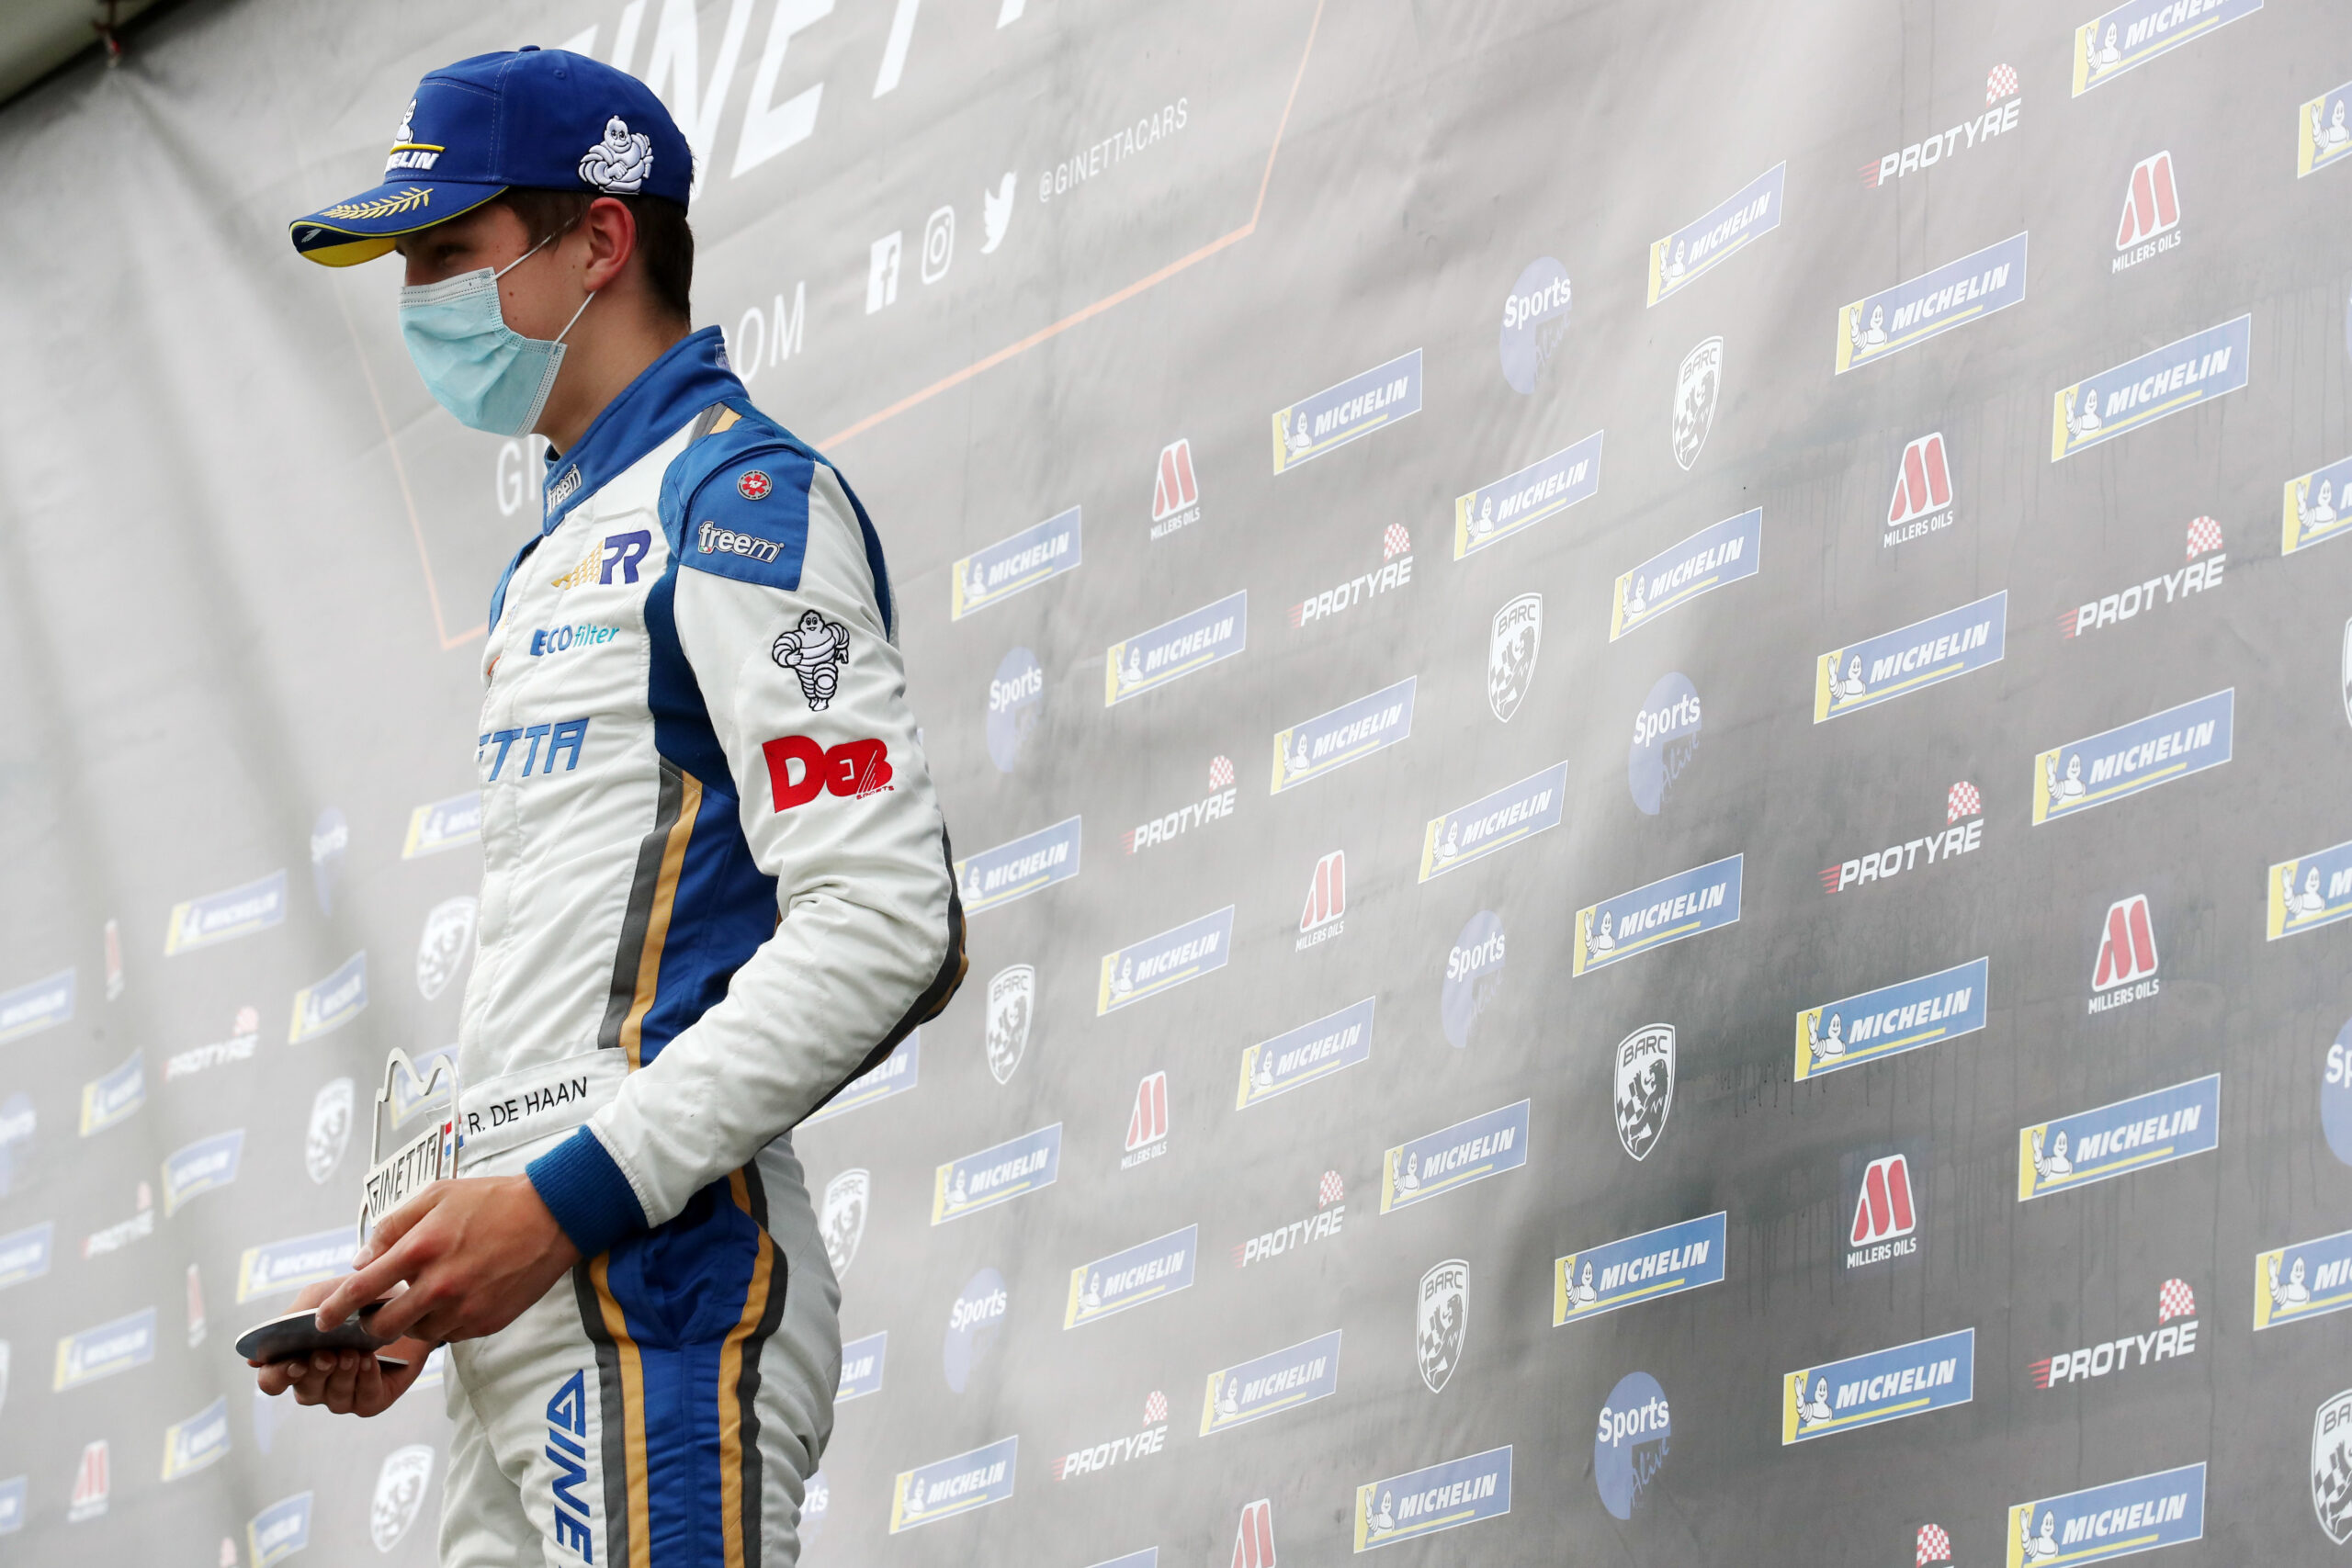 Double rookie podium for Richardson Racing in Ginetta opener